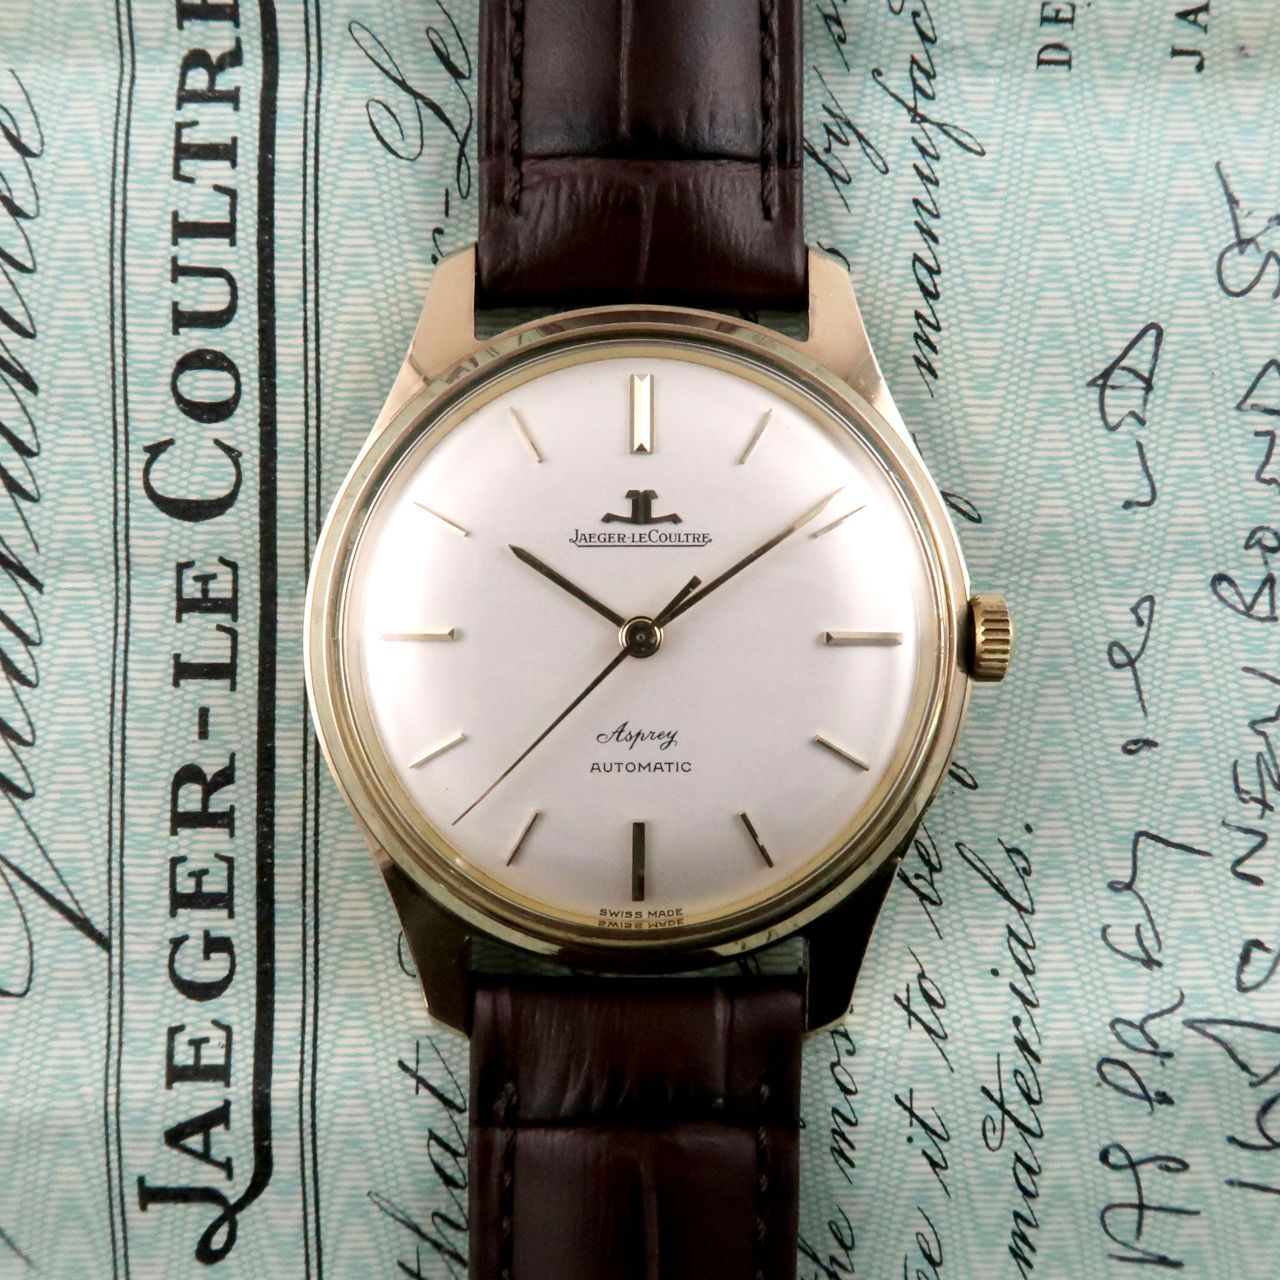 Jaeger-LeCoultre retailed by Asprey Ref. E385 gold vintage wristwatch, sold in 1964